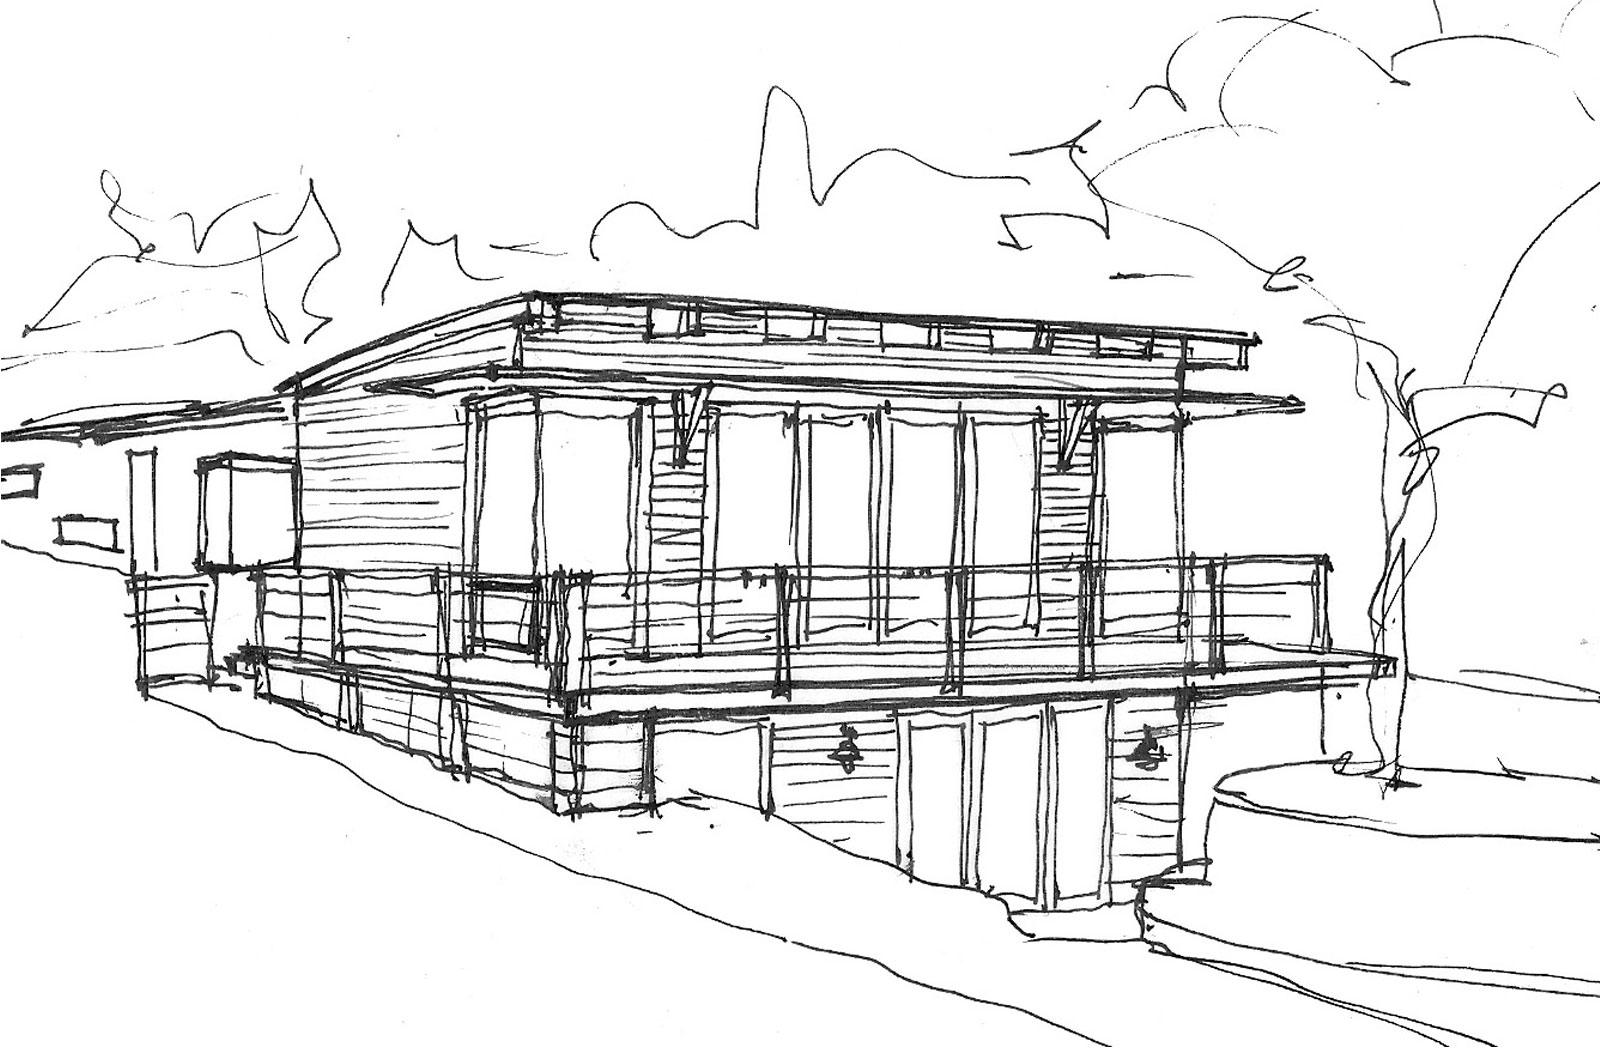 1311953075_Sketch---perspective-front-view